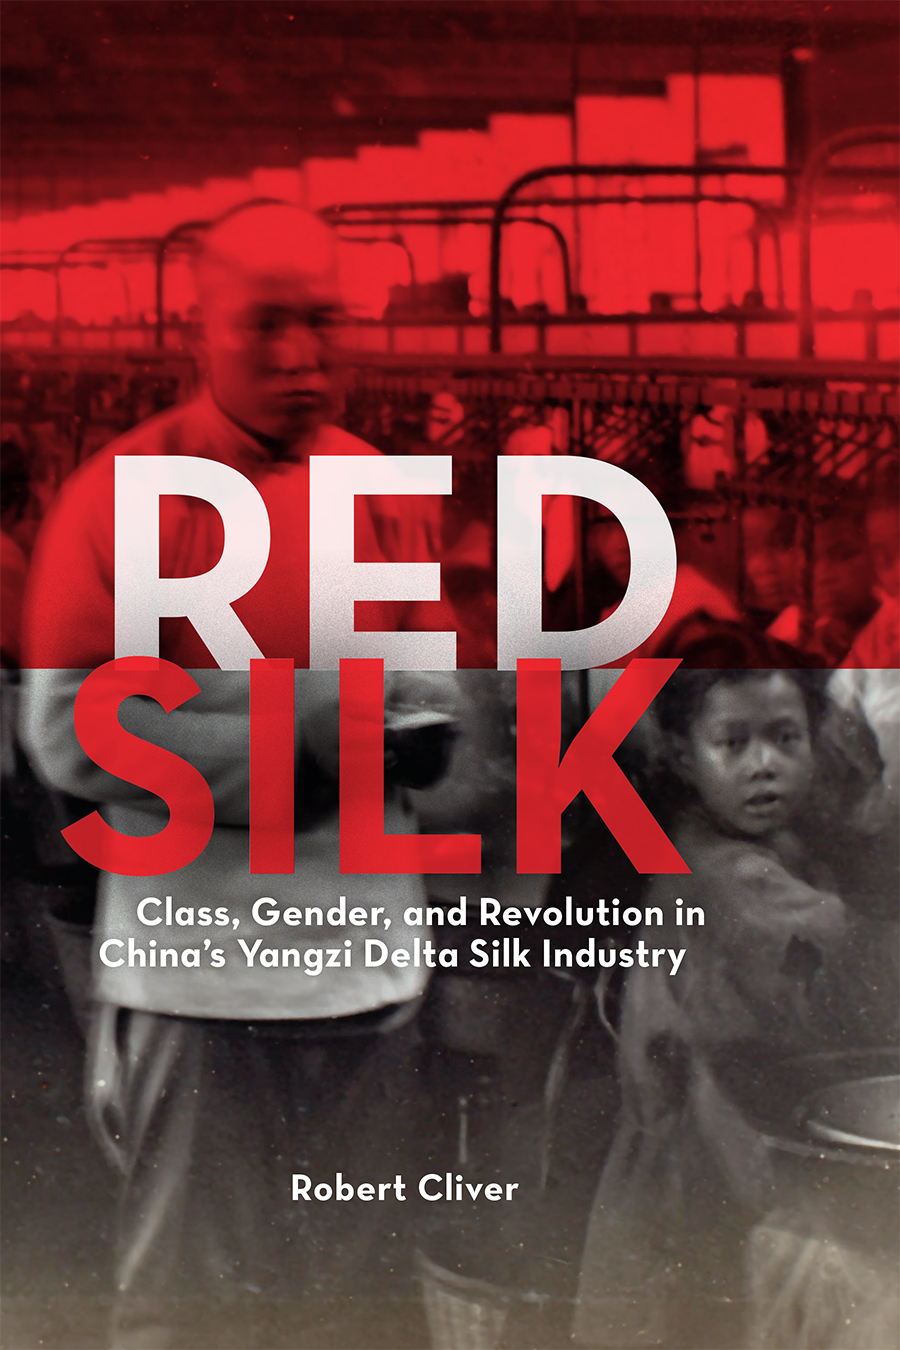 Red Silk: A Conversation with Robert Cliver